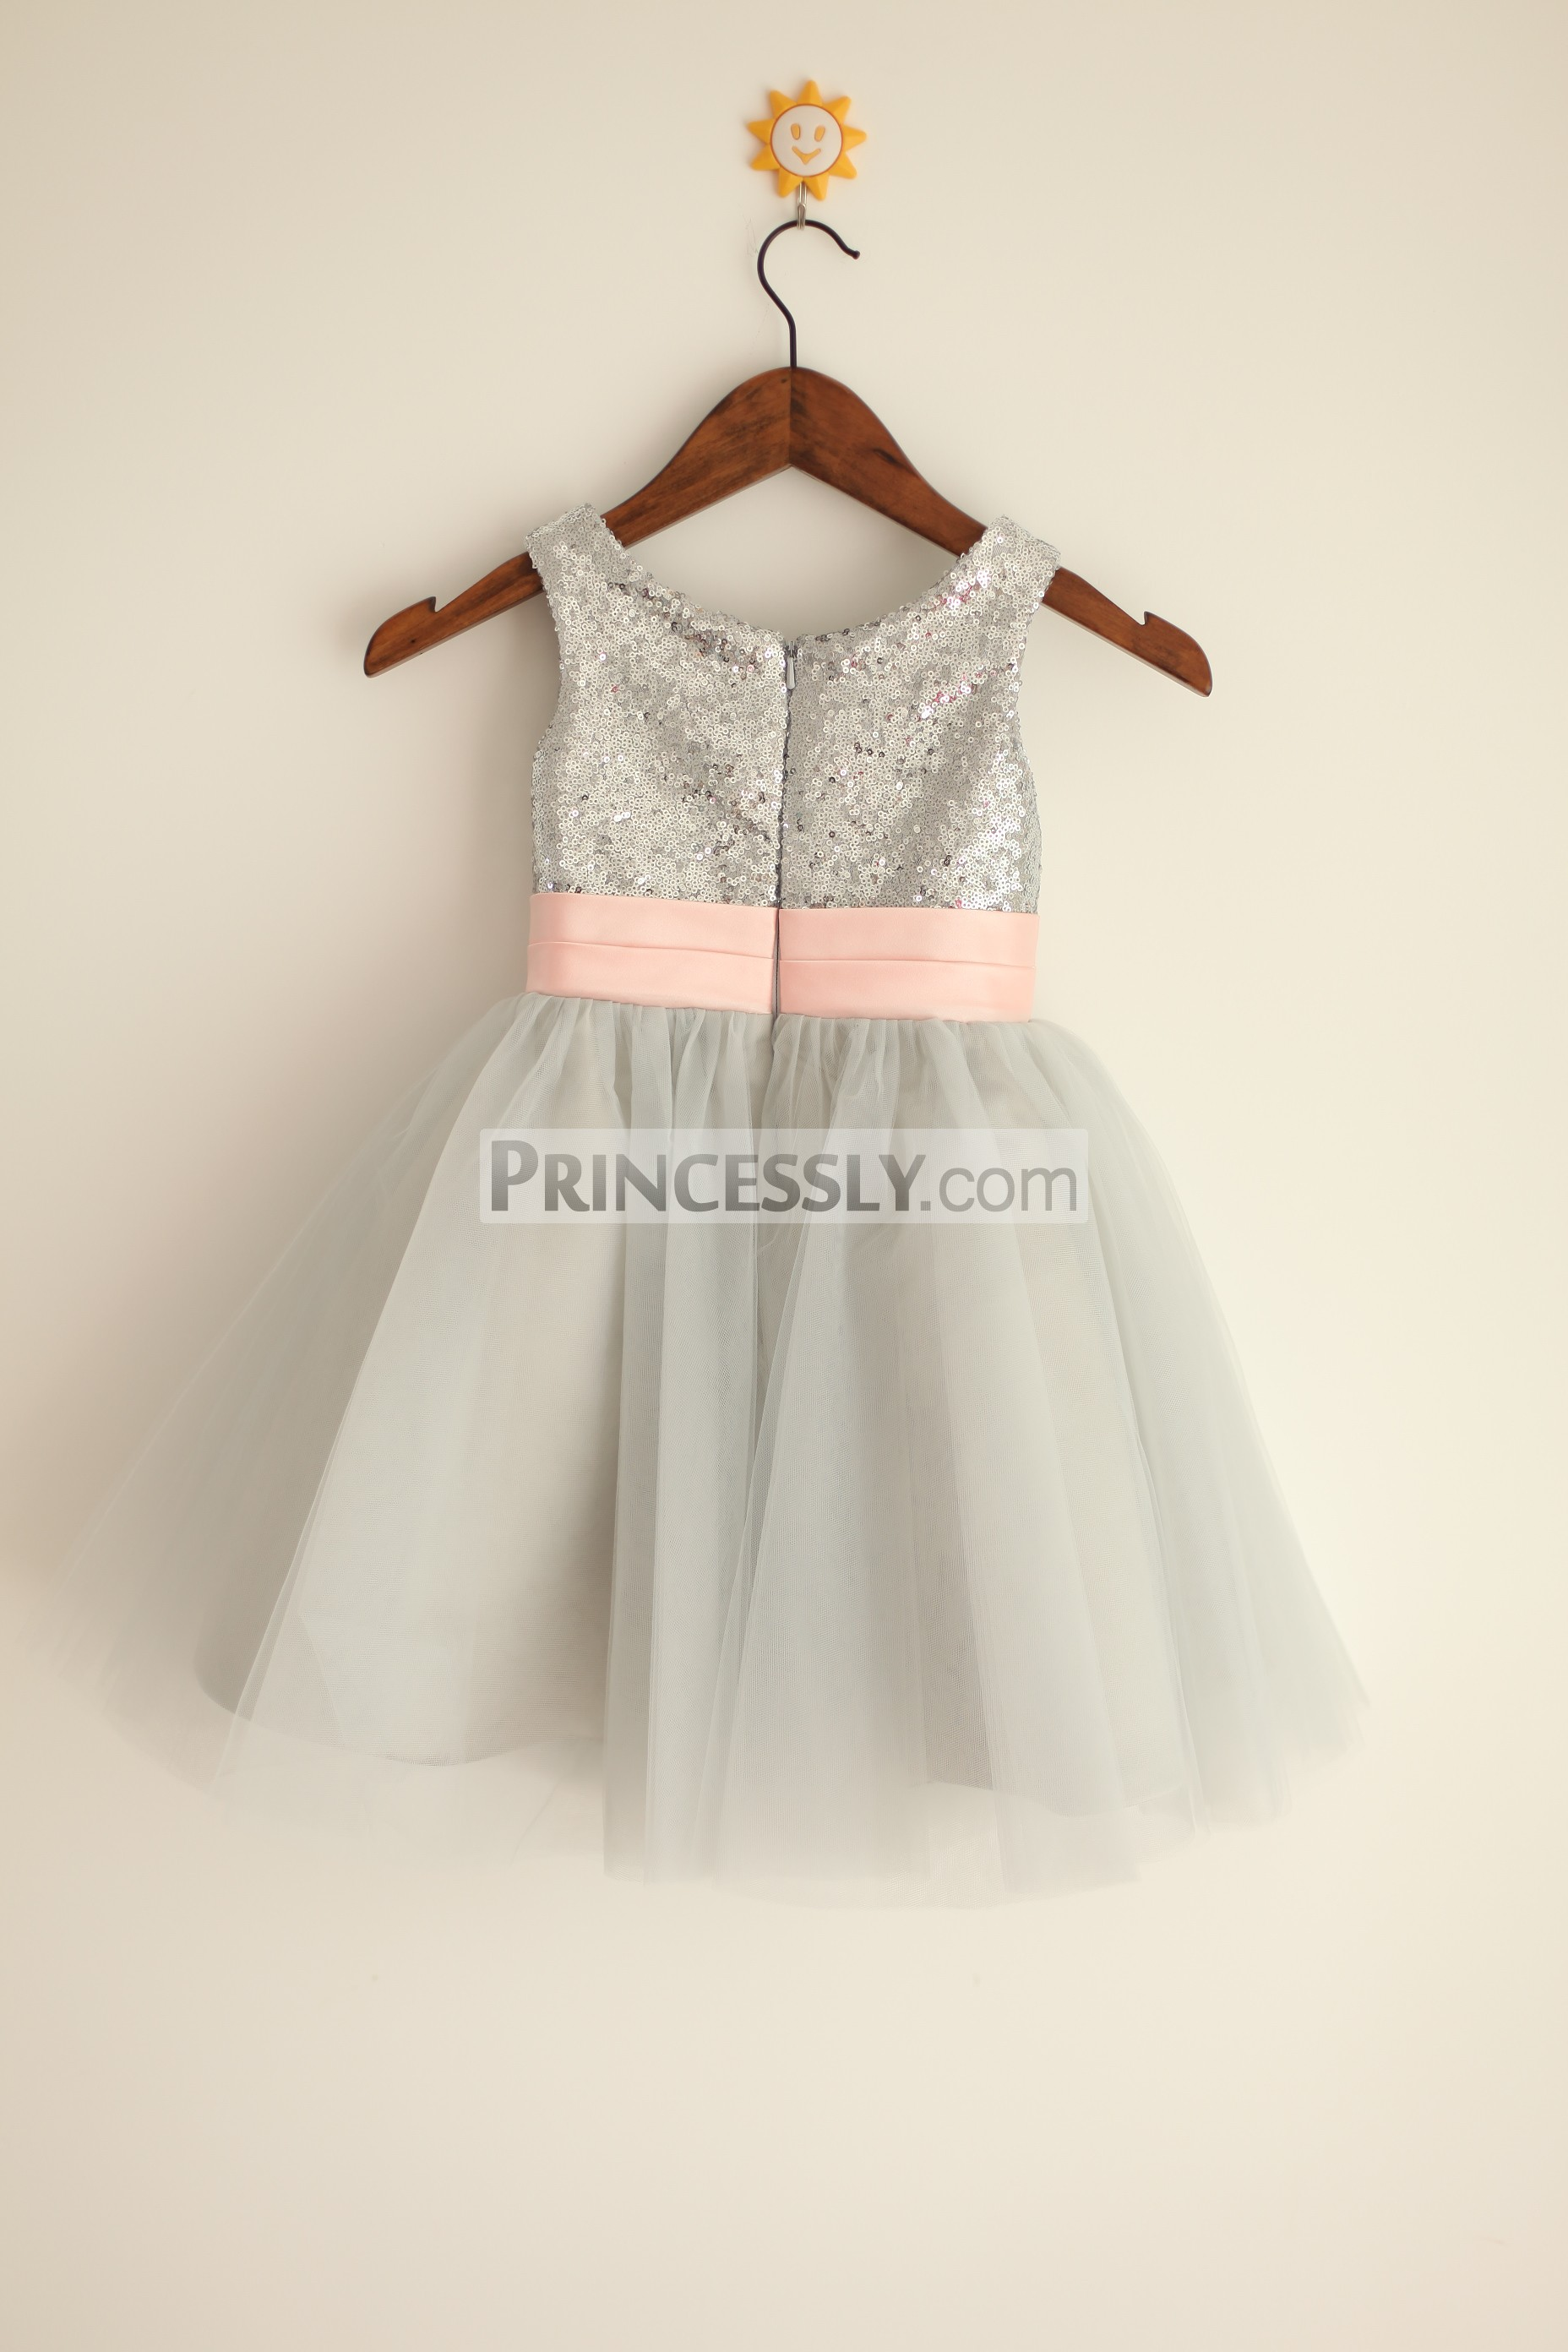 ac90a7e6e98 Silver Grey Sequin Tulle Flower Girl Dress with Blush Pink Belt ...